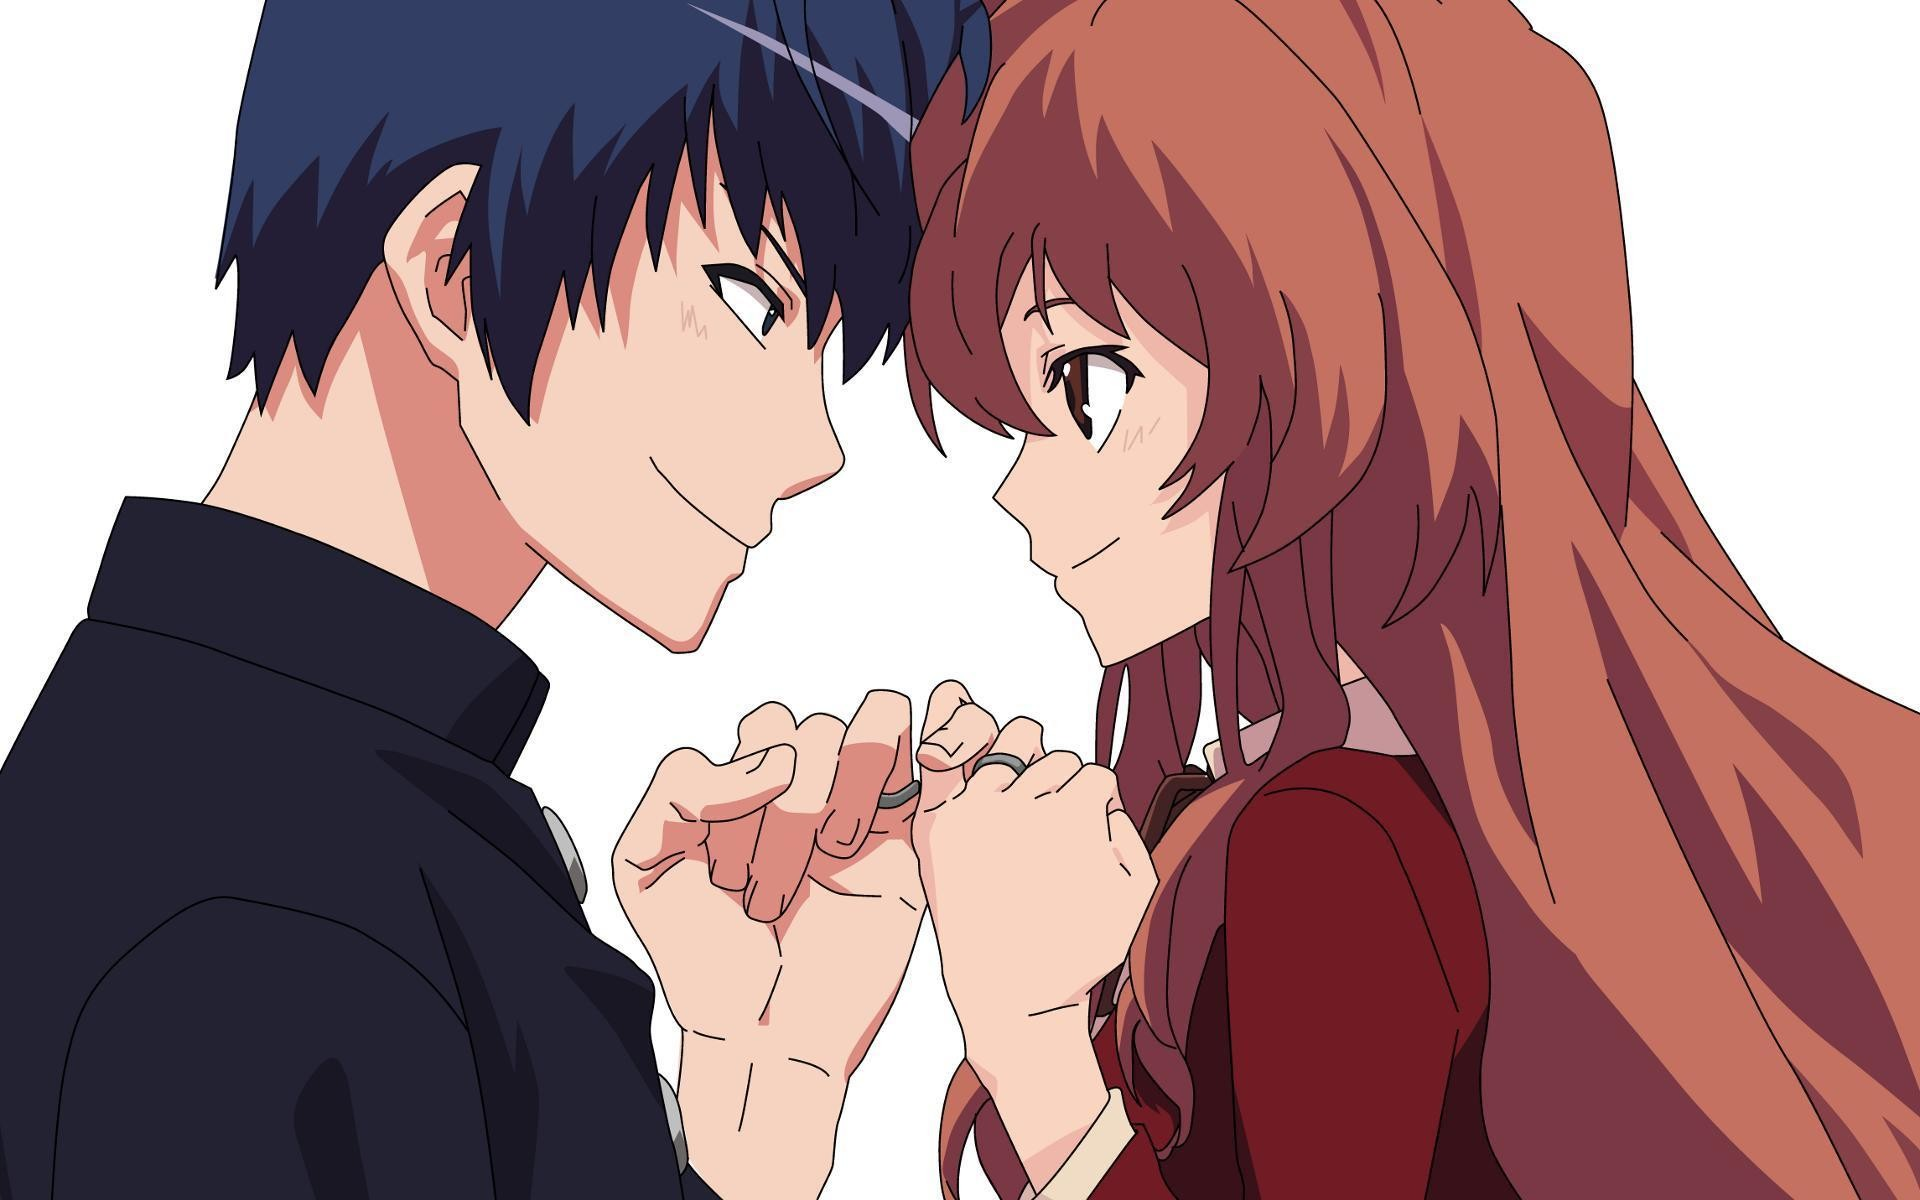 Anime couples images ~Anime Couples♥ HD wallpaper and background .